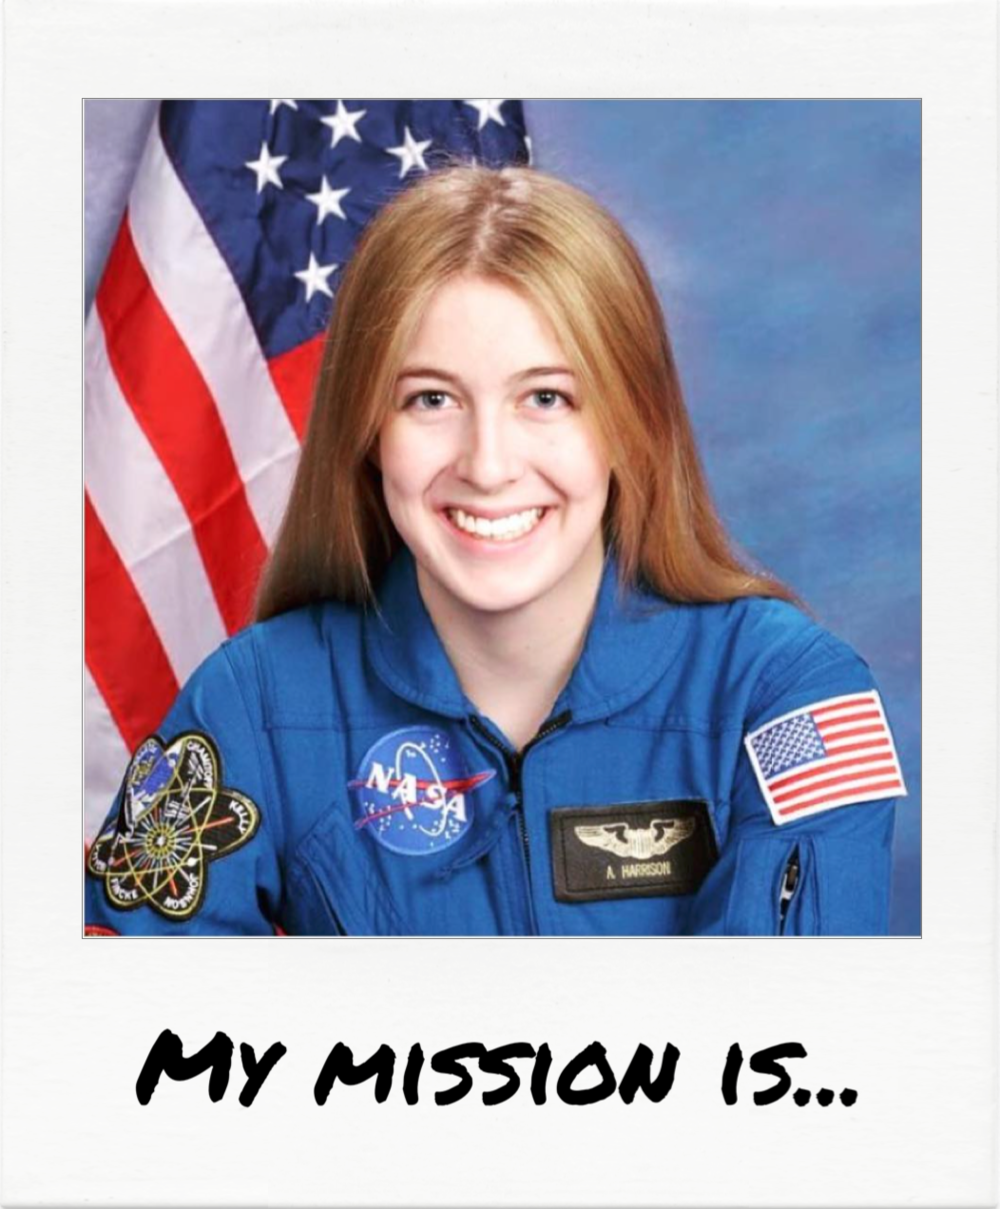 """...is to become a scientist, astronaut, and someday the first astronaut to walk on Mars."" - Astronaut Abby"